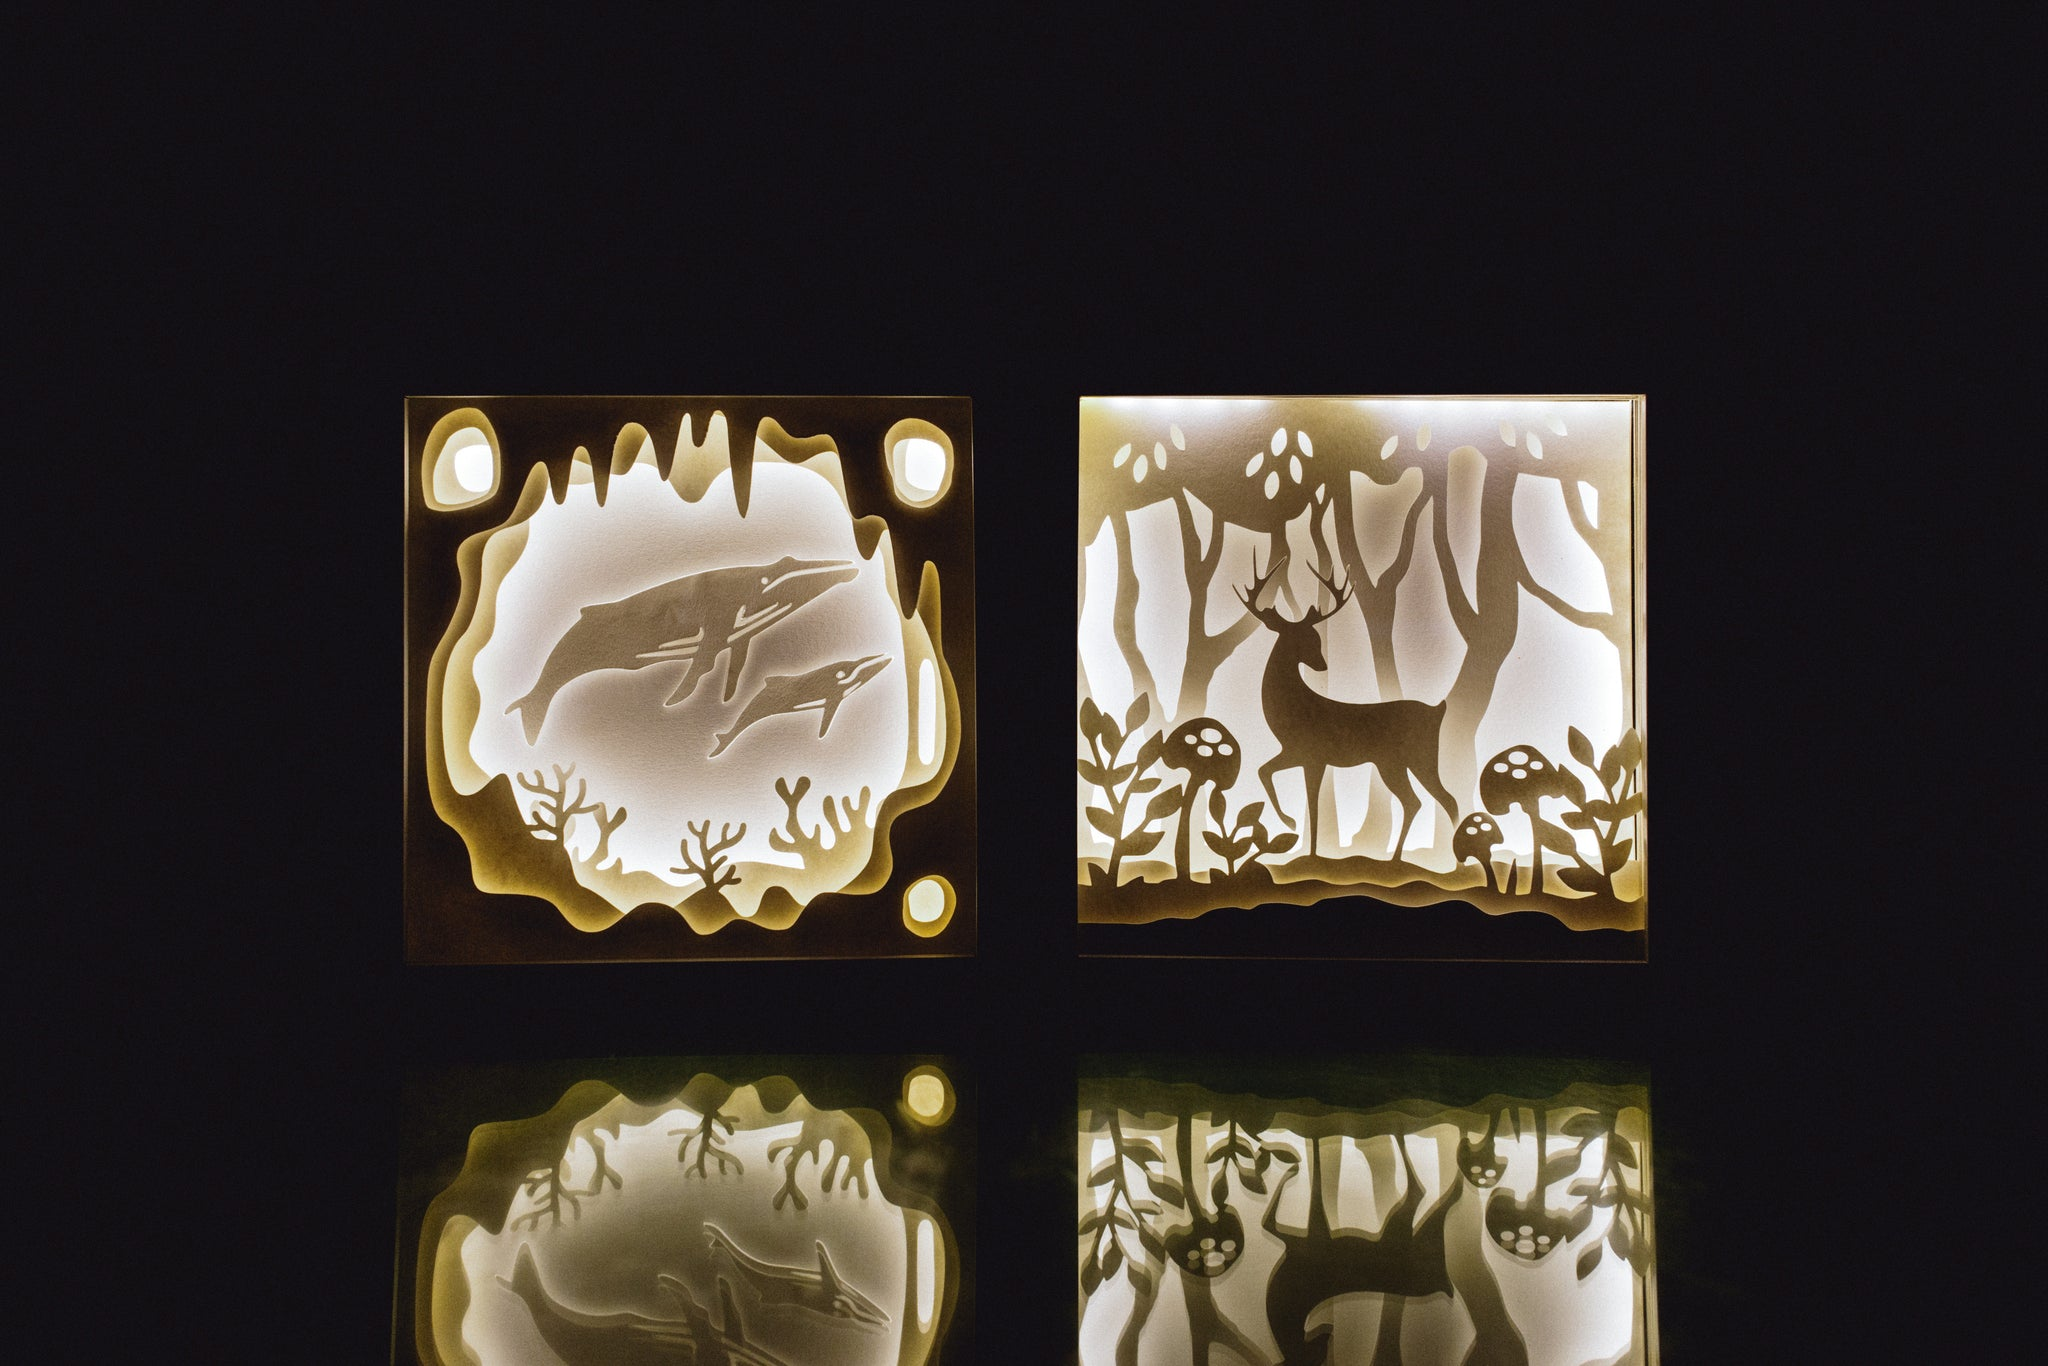 Papercut Lamp / 25 Jun Sun 1300-1630 hrs